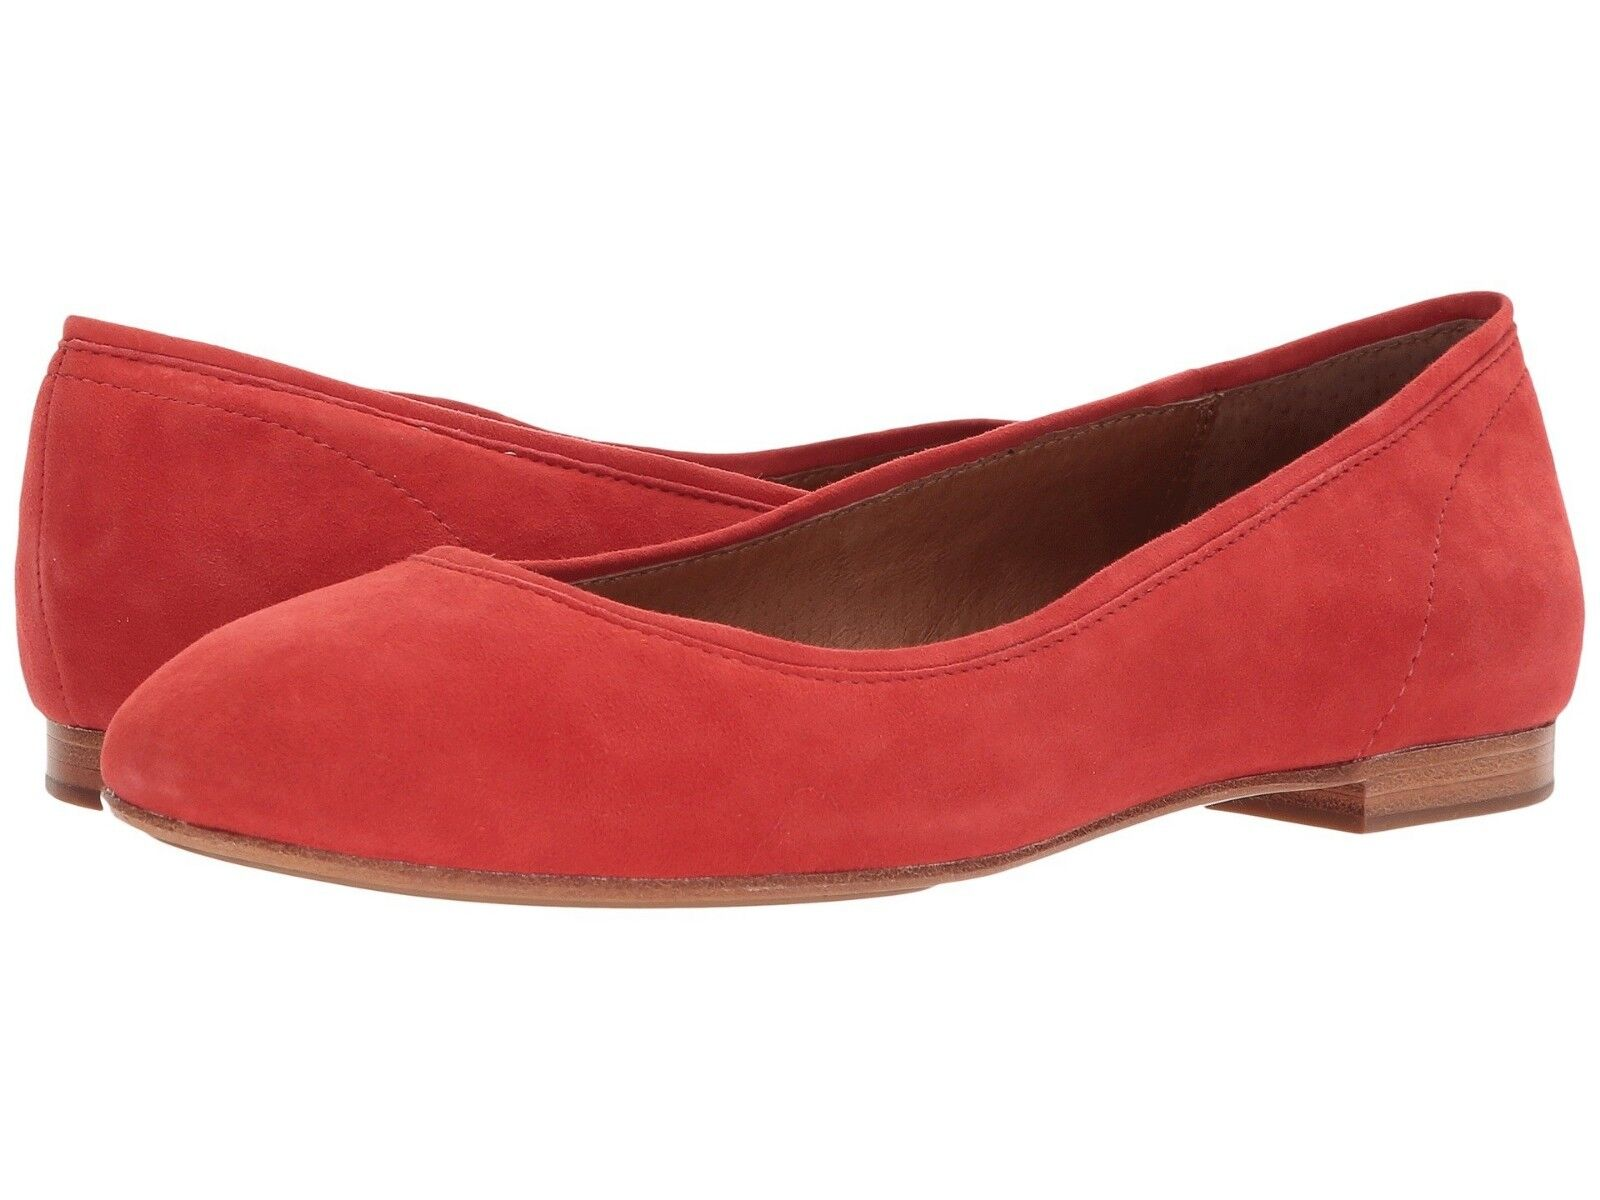 198 NEW FRYE Sz6US GLORIA LEATHER BALLET FLAT CORAL SUEDE